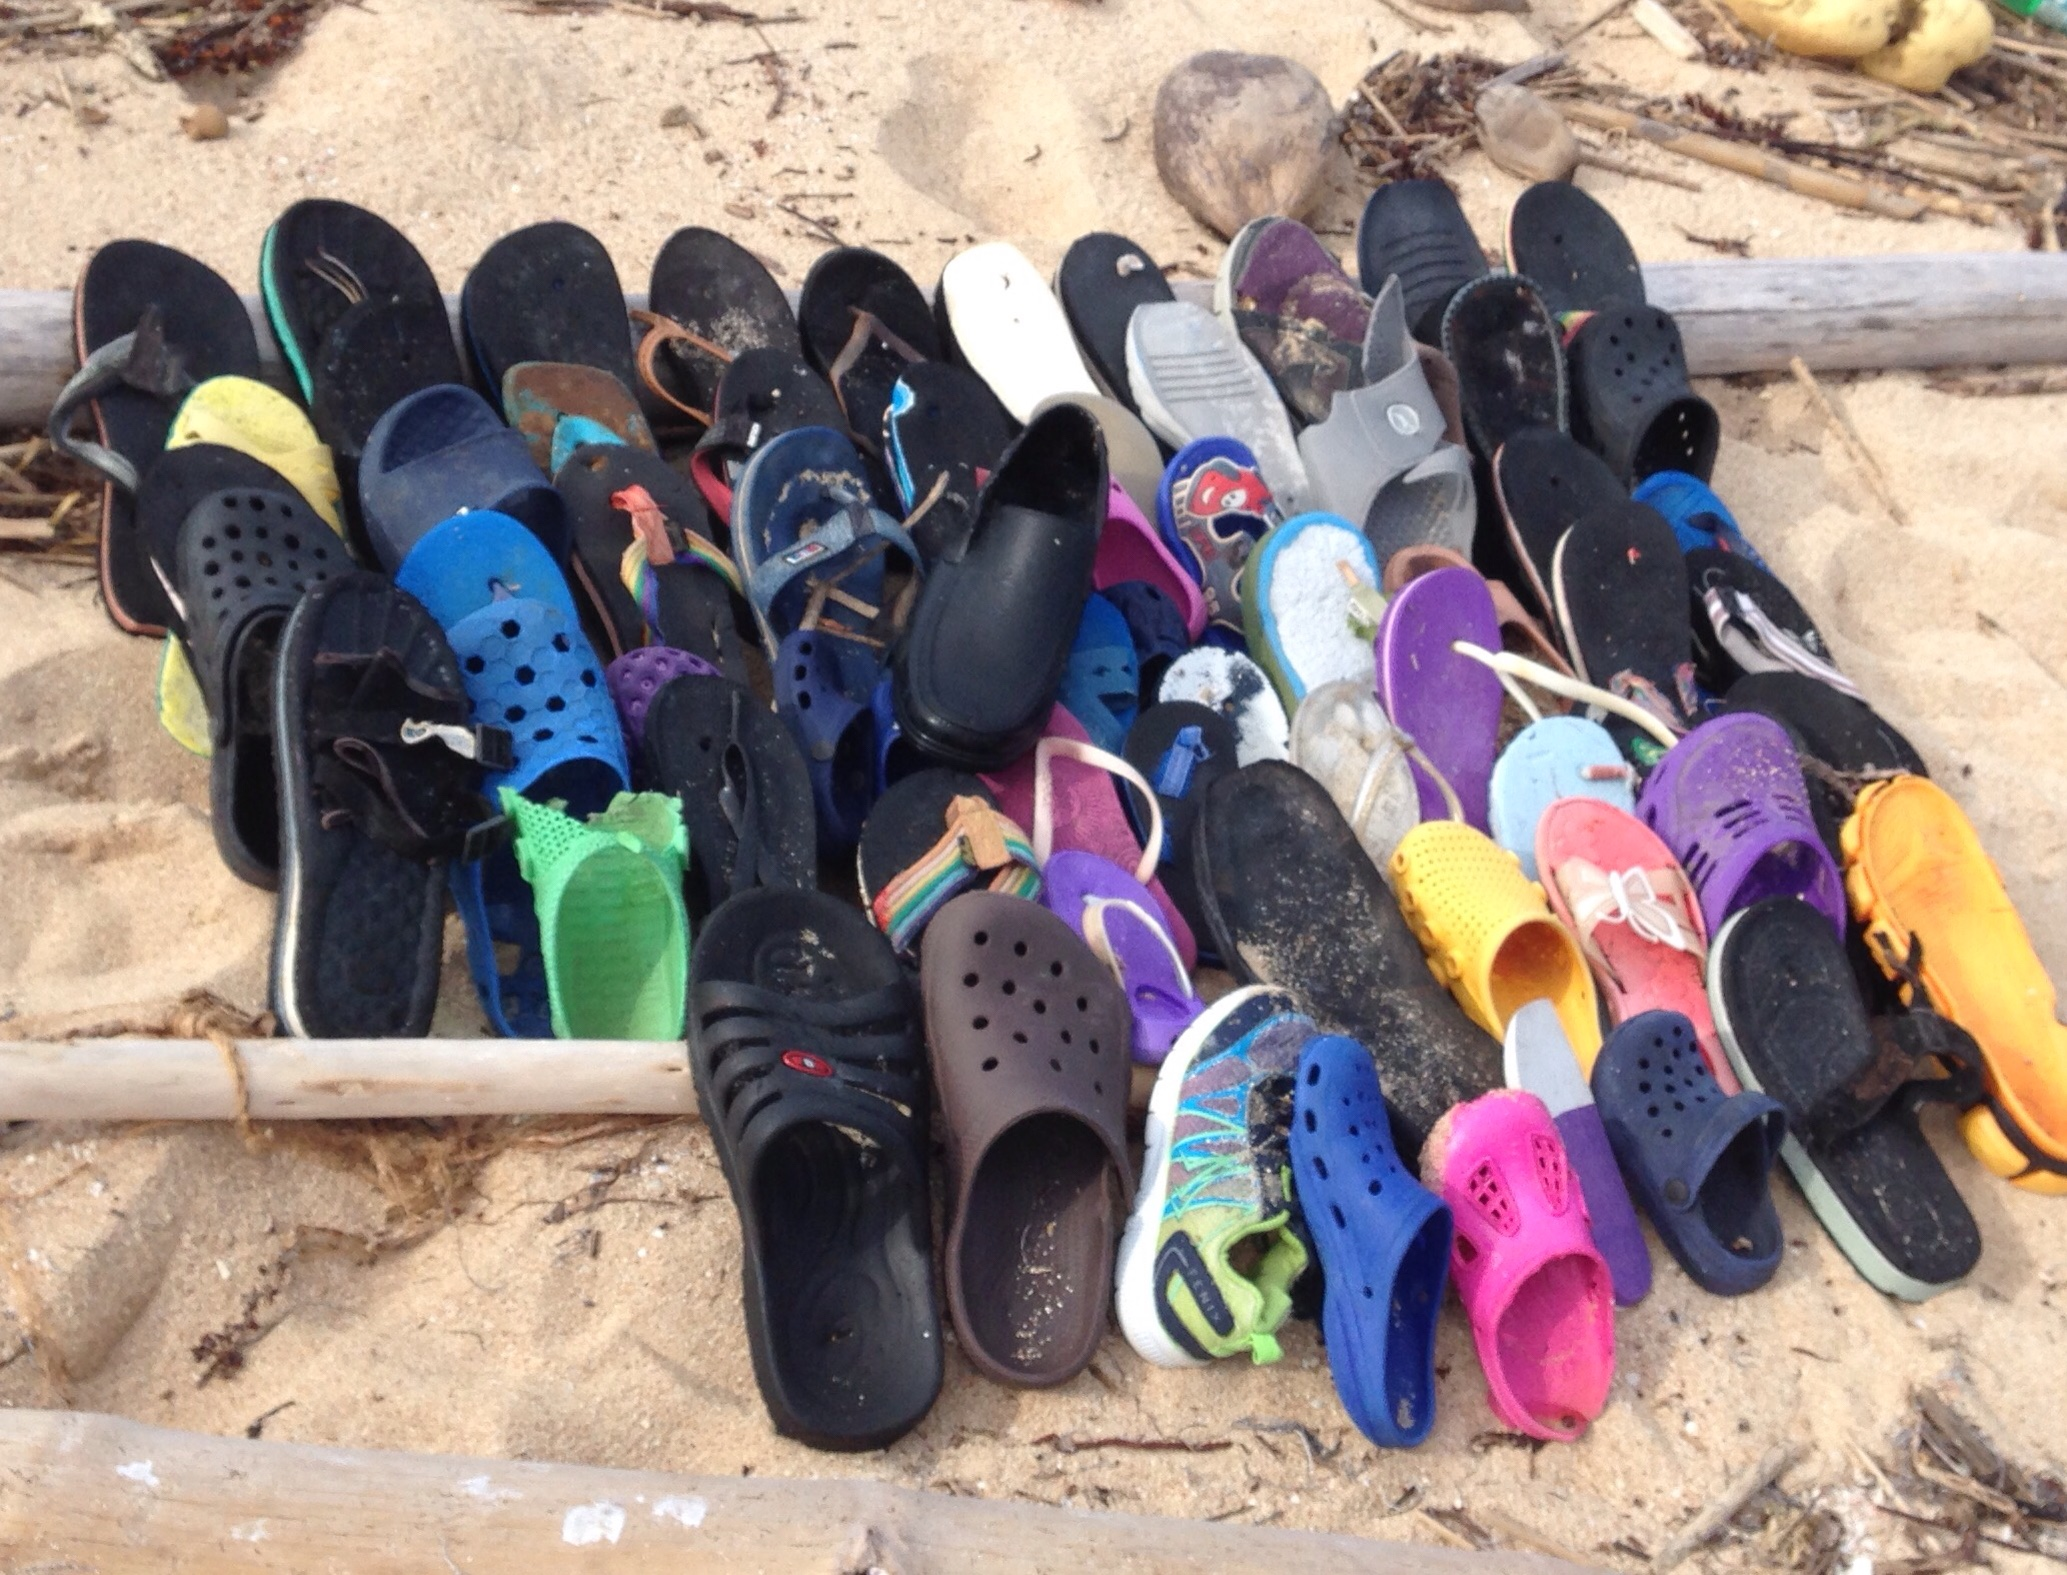 Shoes collected from half of the island.